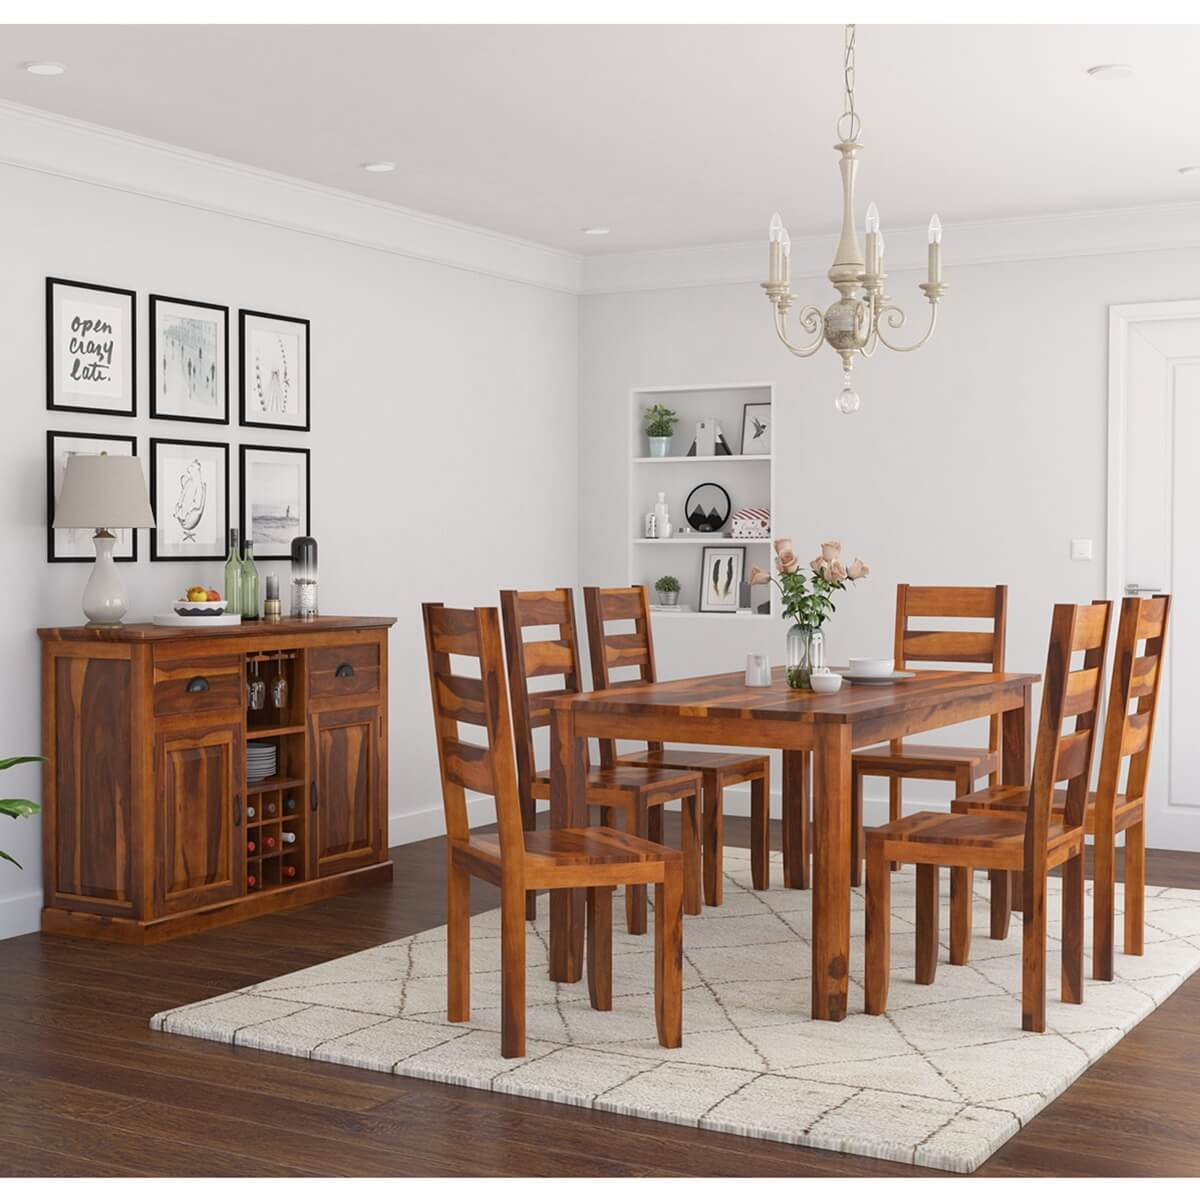 Cariboo Contemporary Rustic Solid Wood 8 Piece Dining Room Set